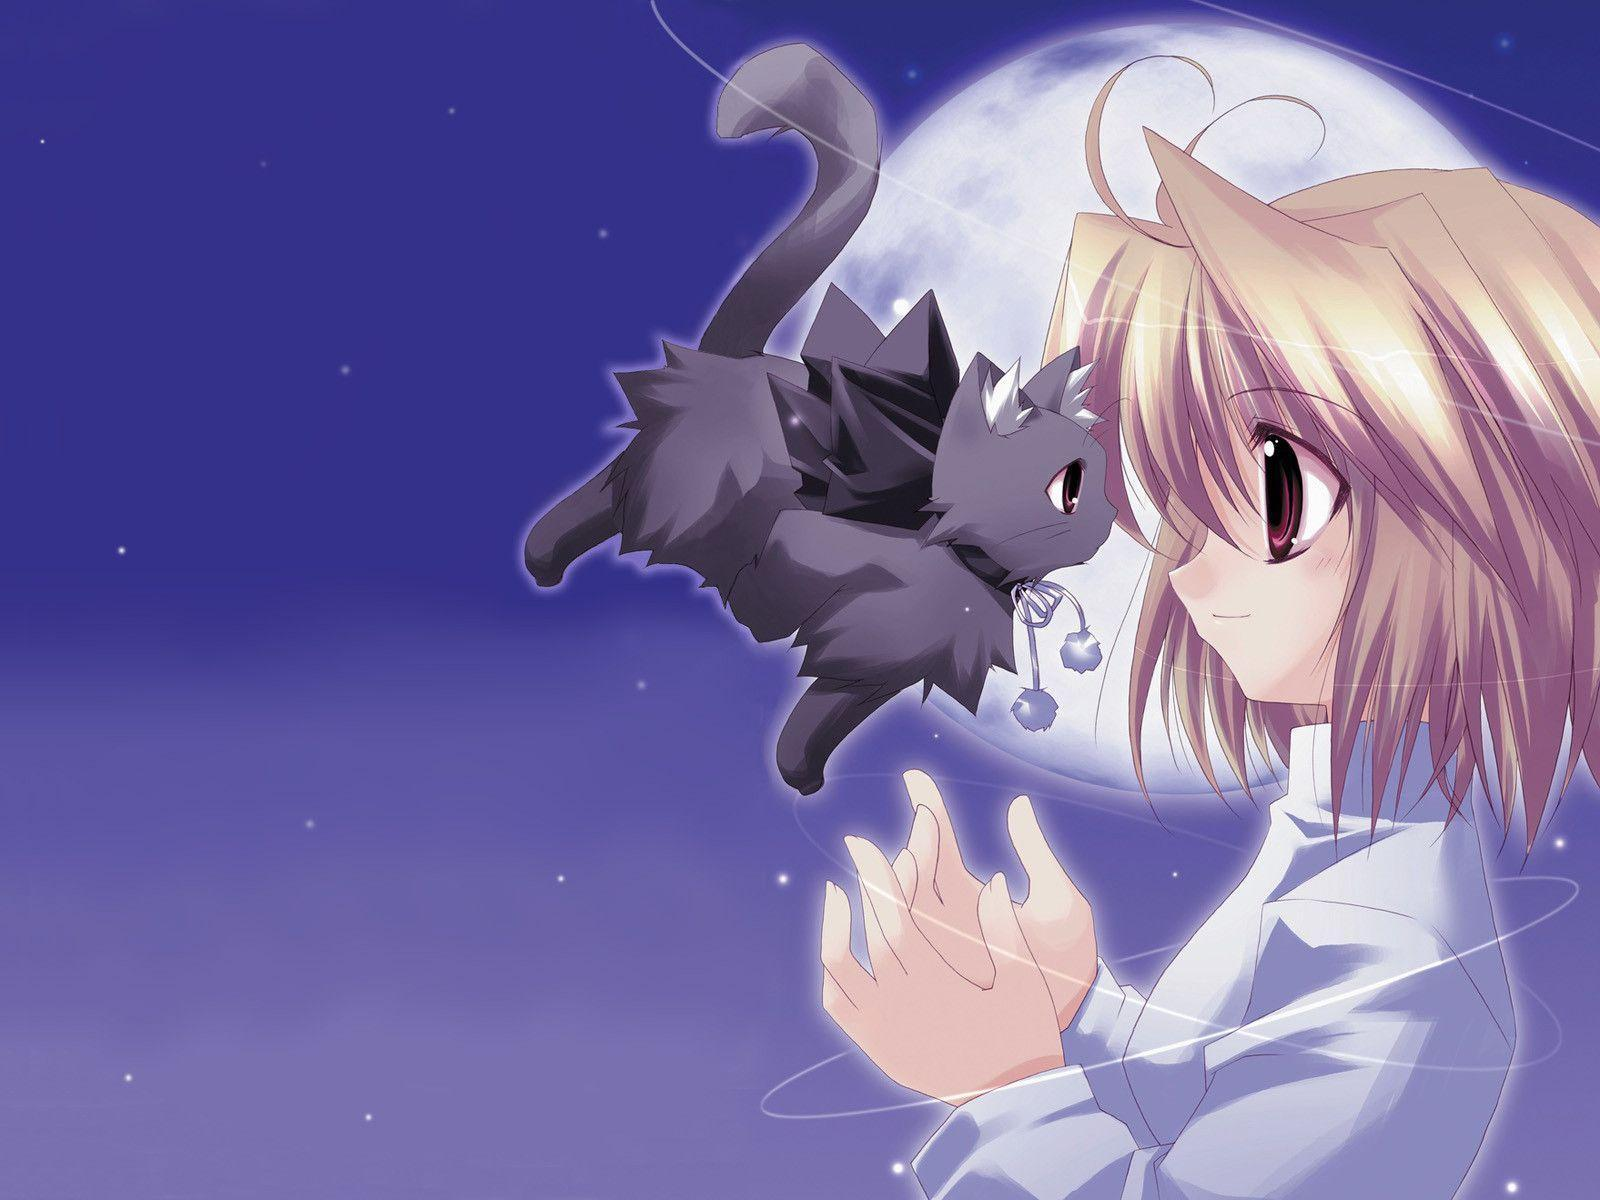 Wallpapers Anime Cute 1600x1200